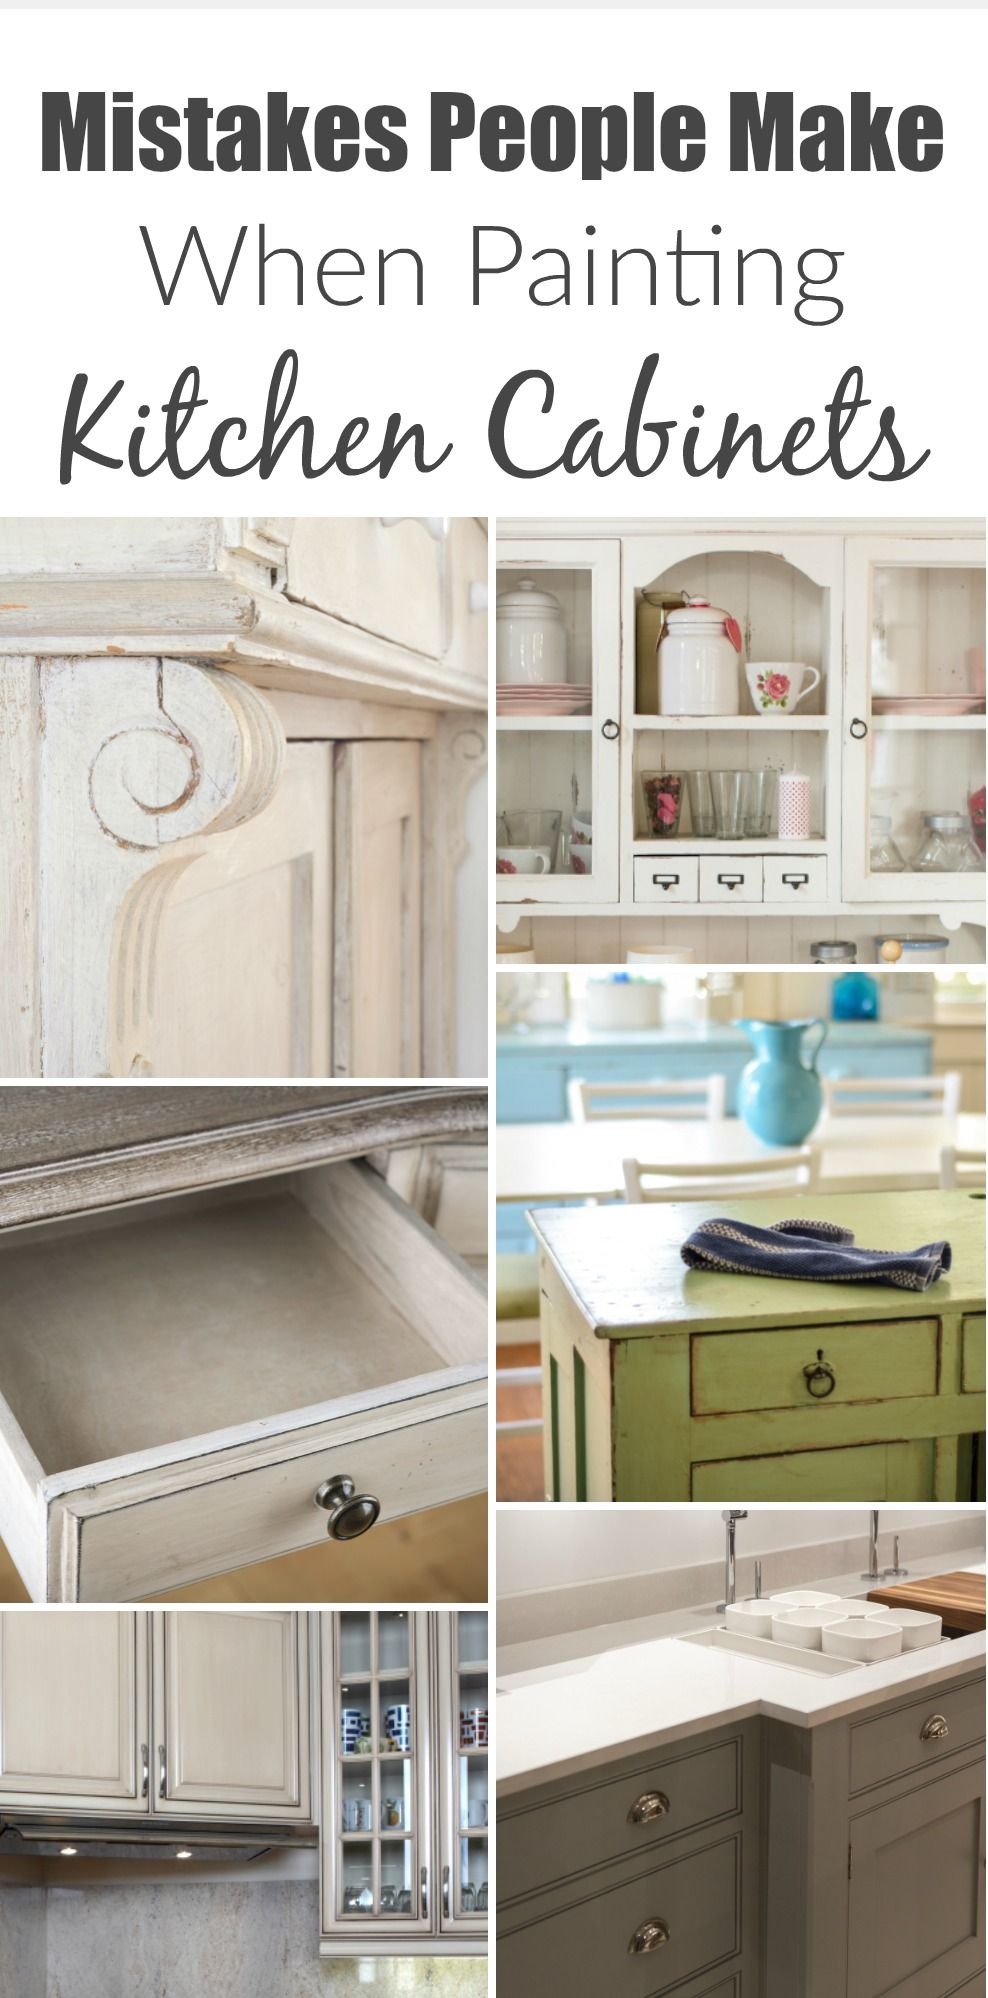 How To Paint Furniture Without Stripping First Painting Kitchen Cabinets Home Diy Home